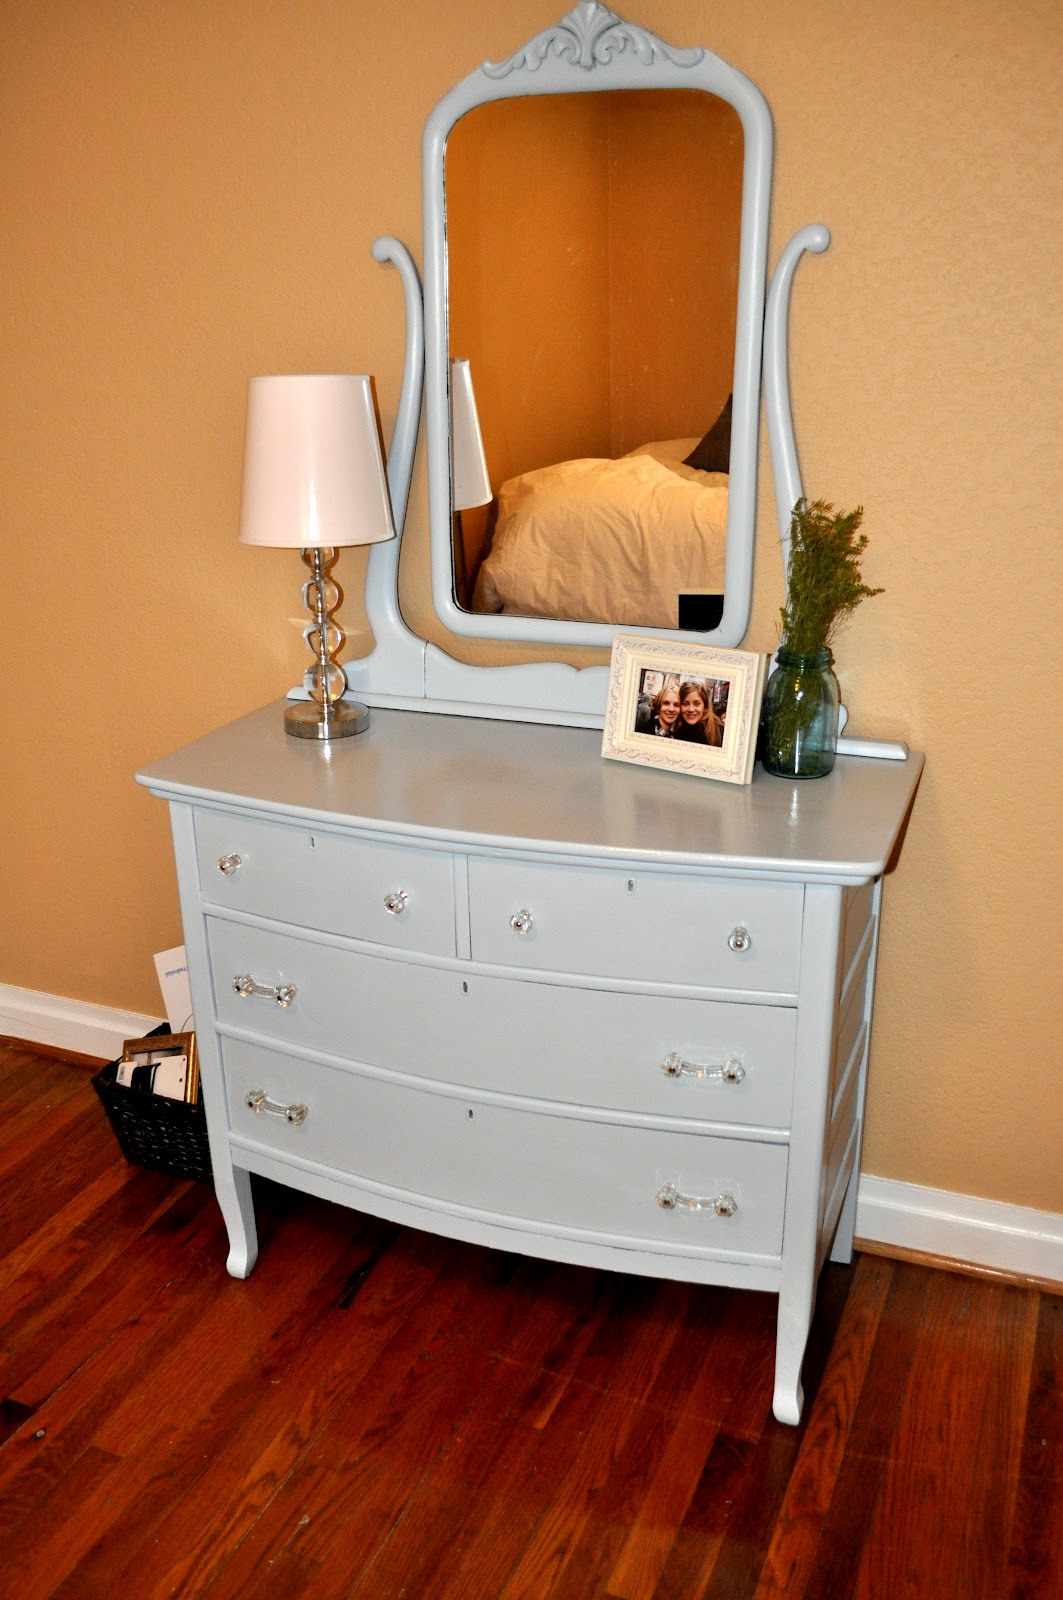 This Pretty Little Dresser Has Been The Focal Point Of Our Guest Bedroom For Nearly Two Years Now But Recently I Just Wasn T Feeling Look Felt It